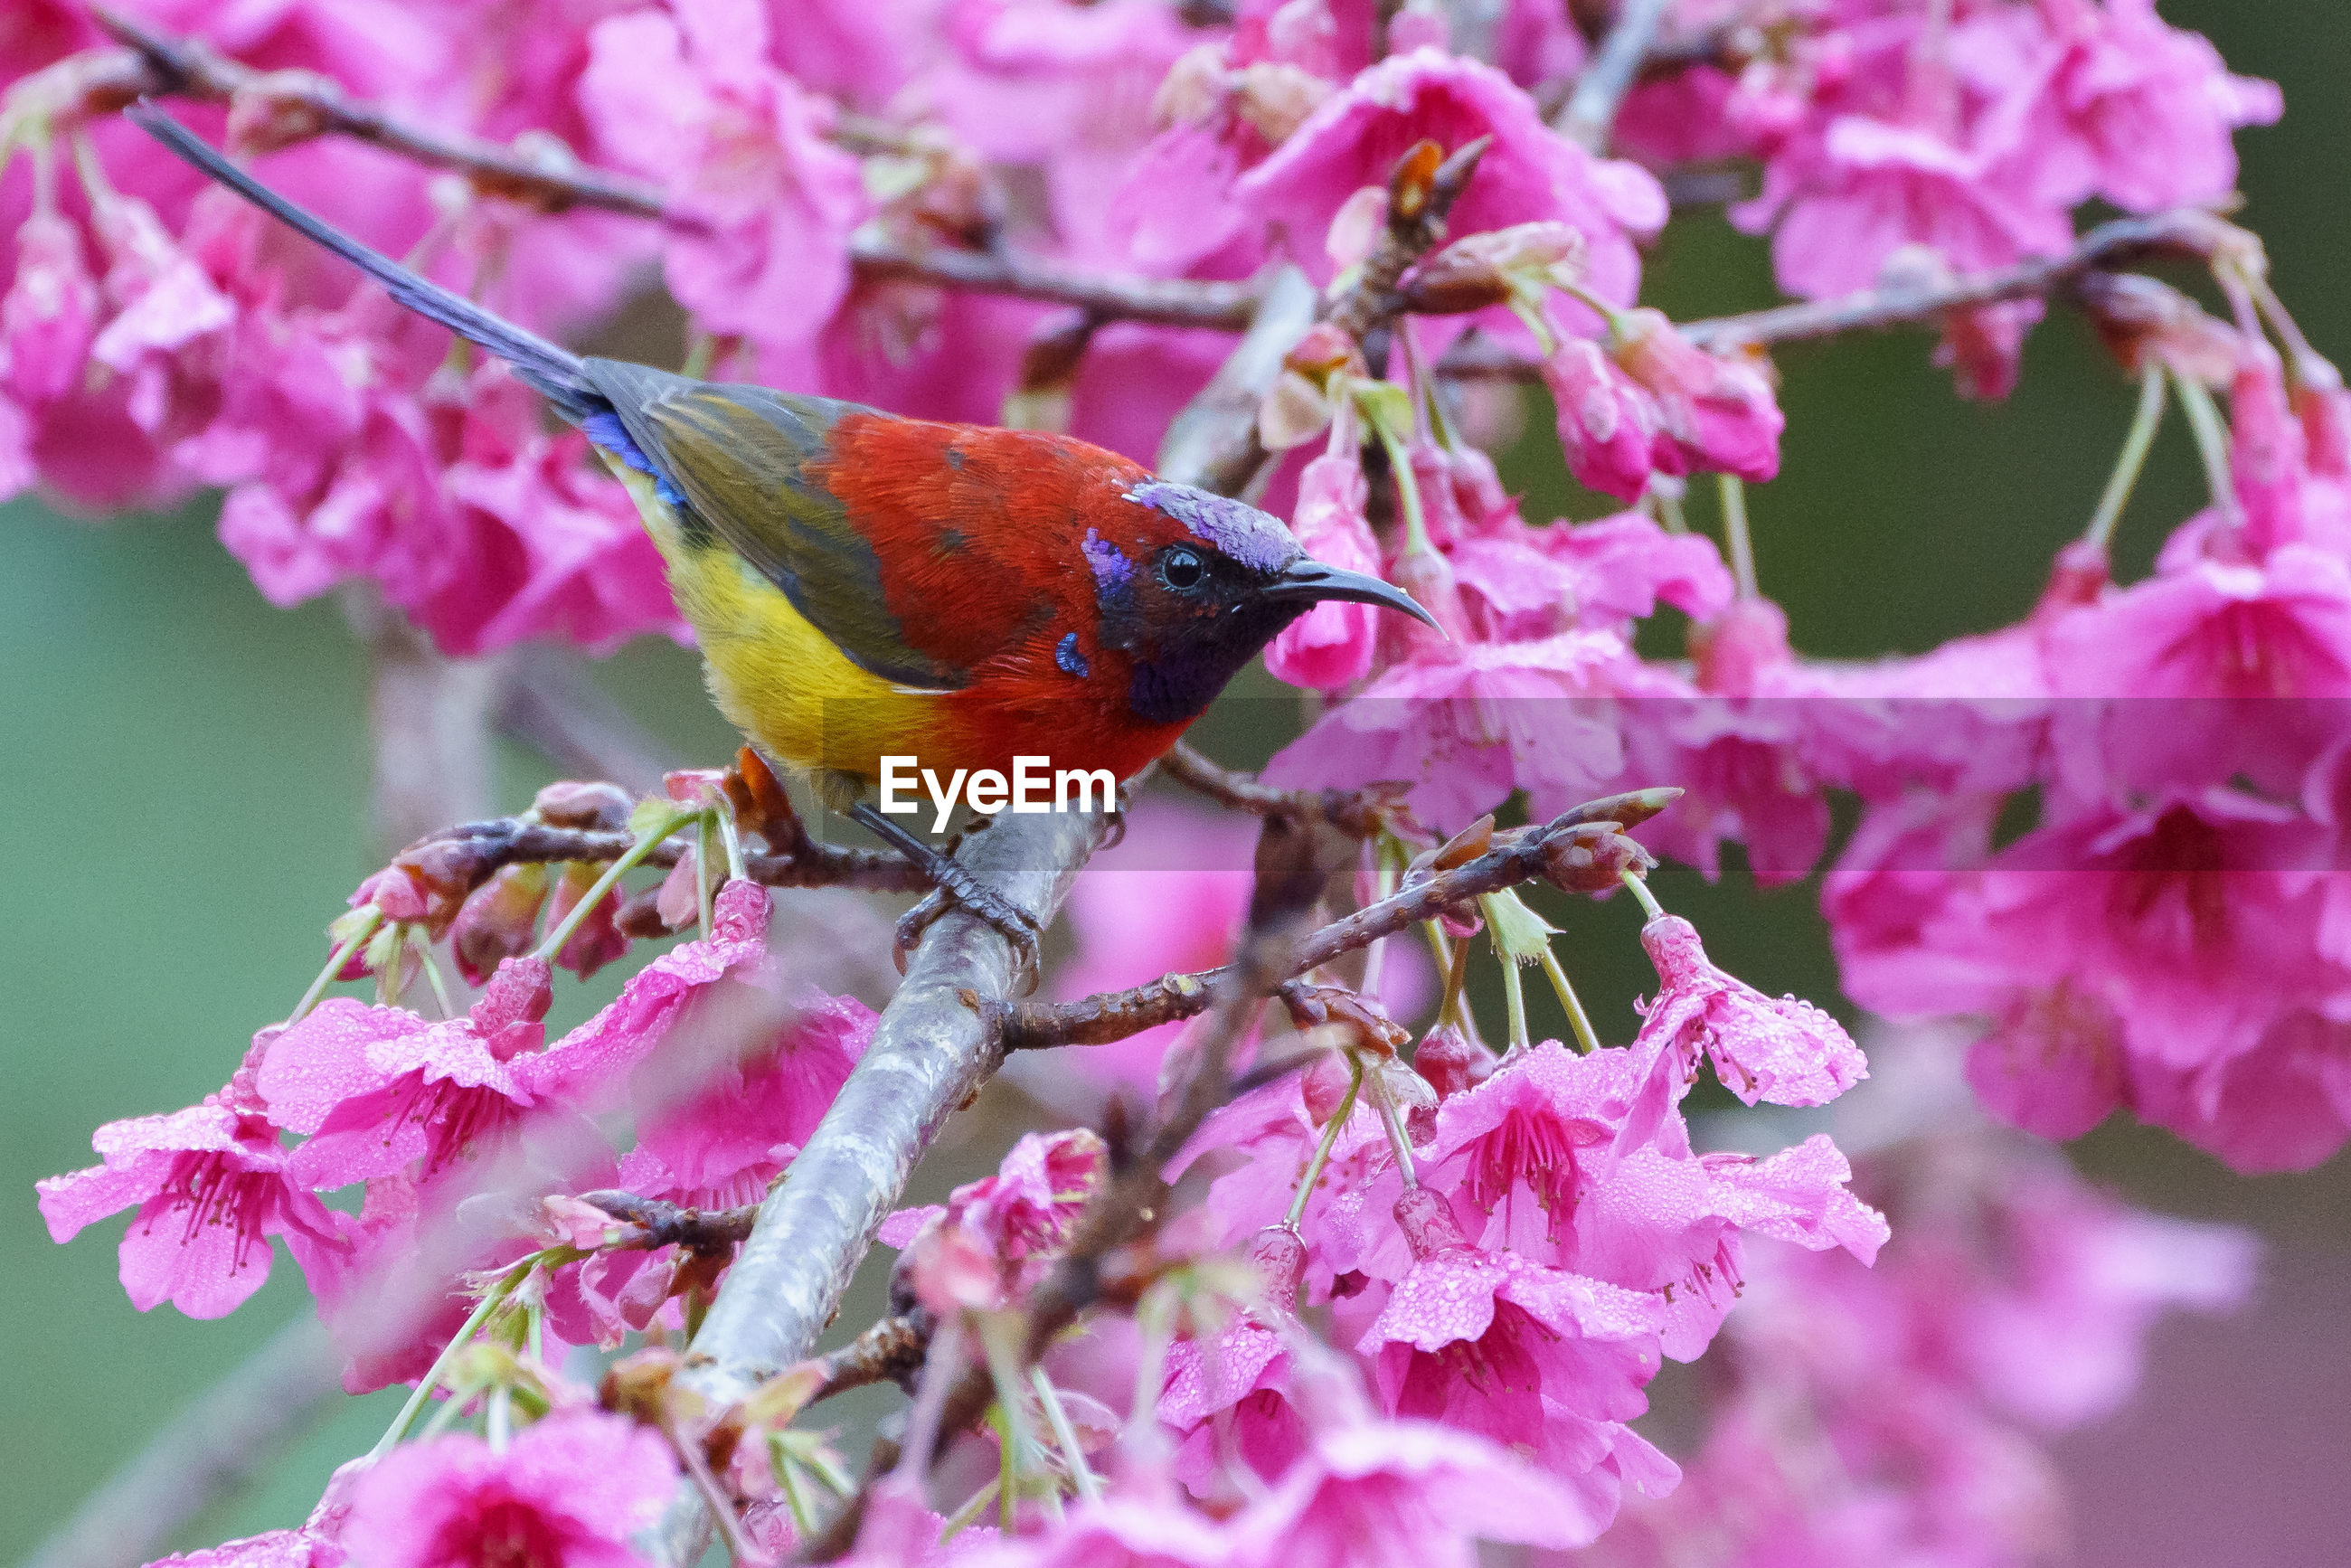 Close-up of bird perching on blooming flowers